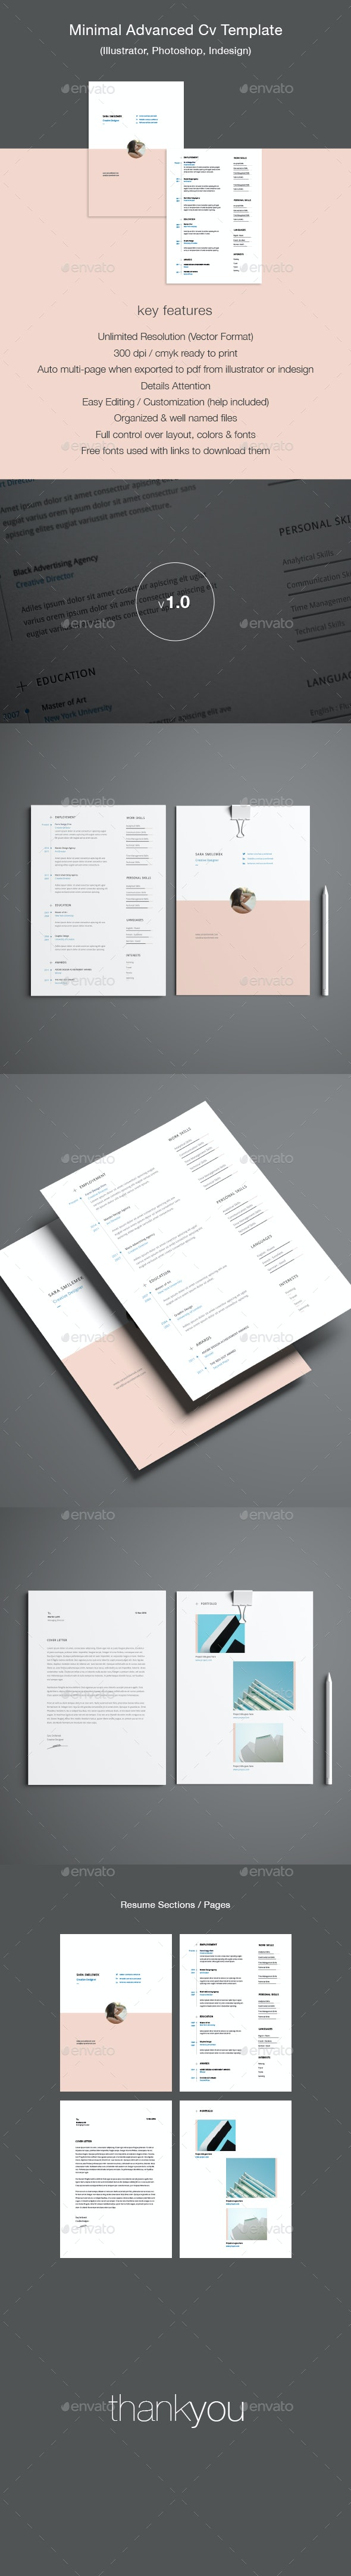 Advanced Resume Template - Resumes Stationery